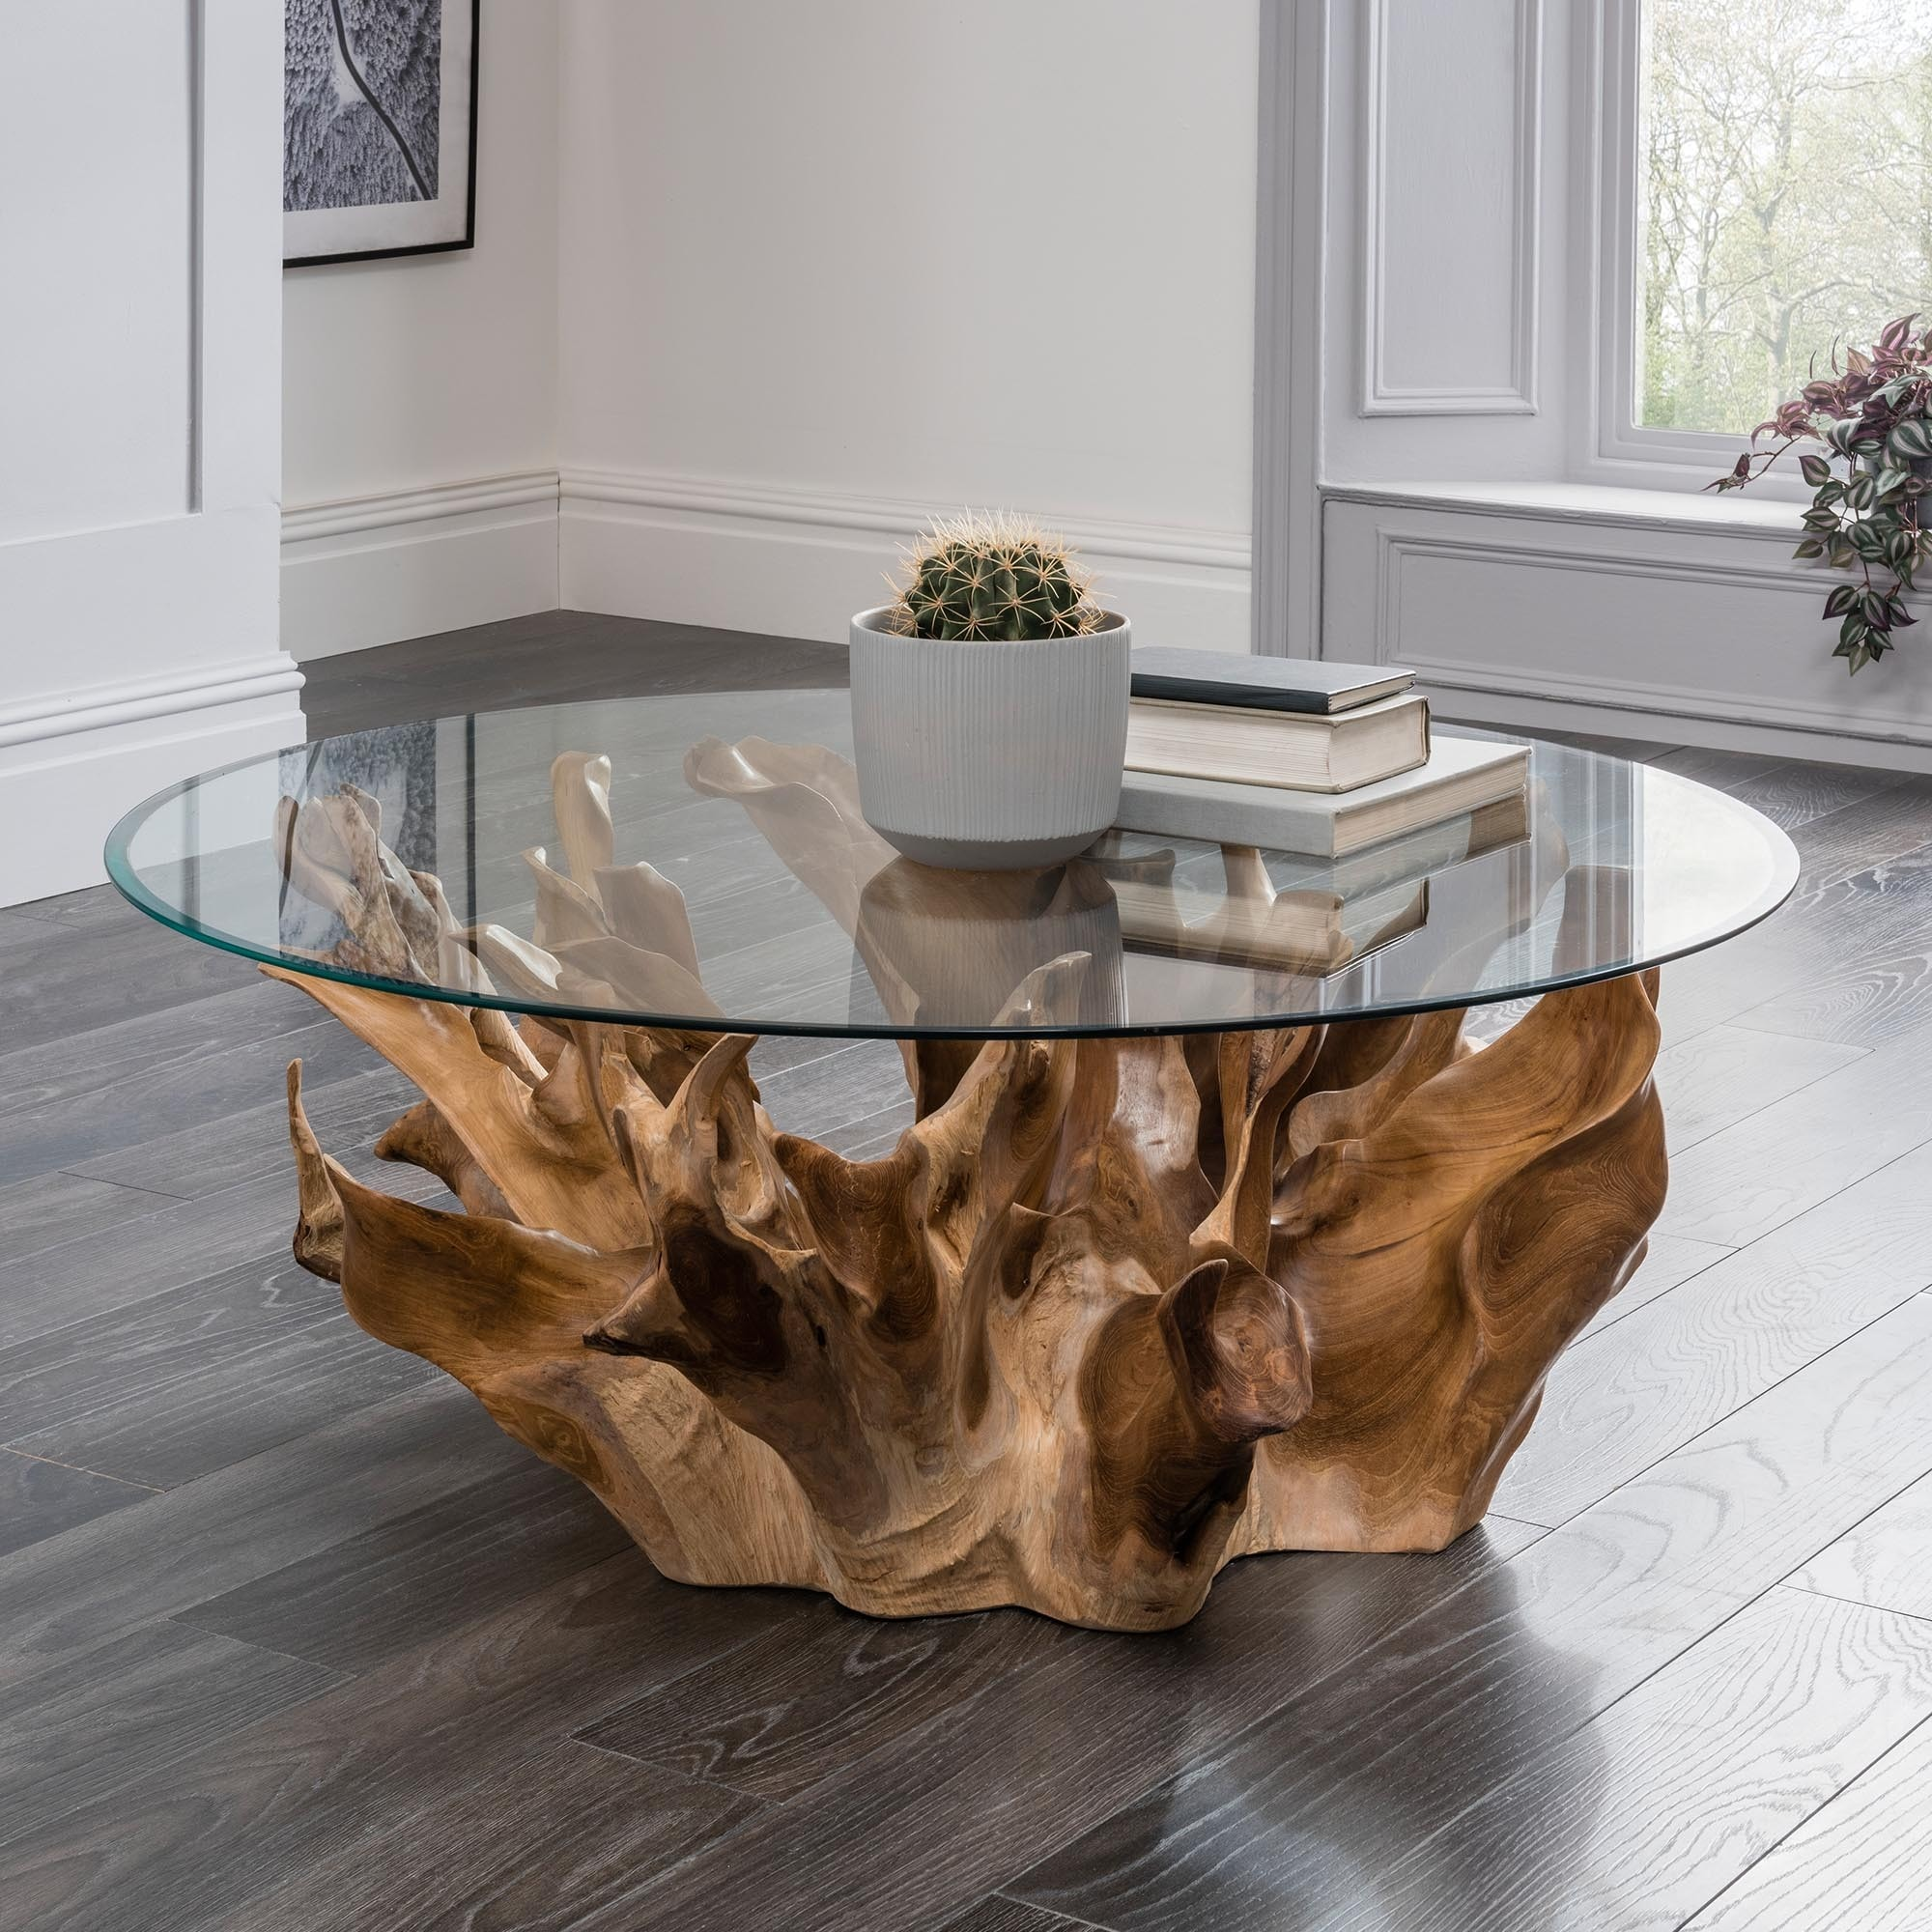 Teak Root Coffee Table Round Buy Glass Coffee Tables Wooden Coffee Tables Glass Teak Root Coffee Table Product On Alibaba Com